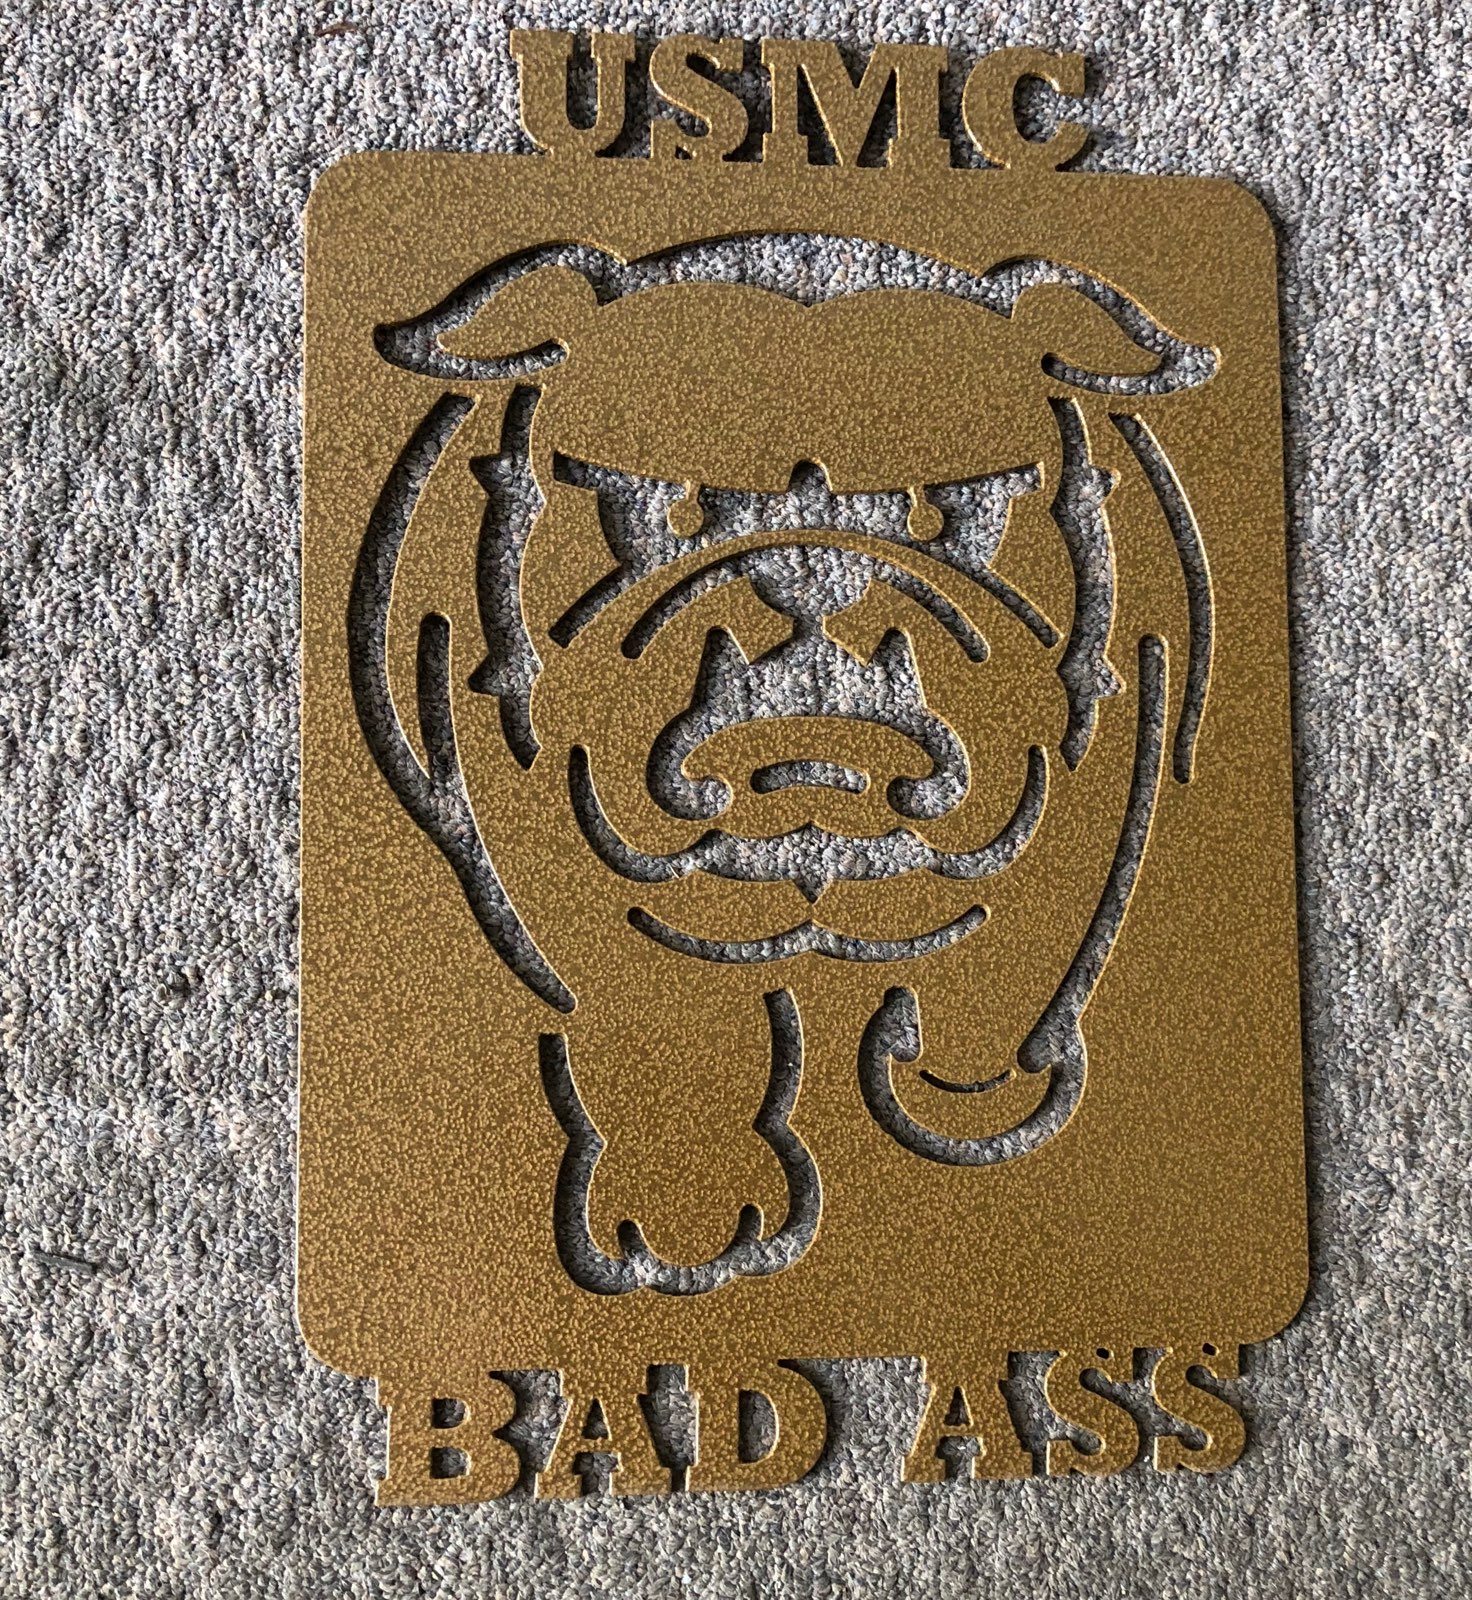 USMC Bull Dog